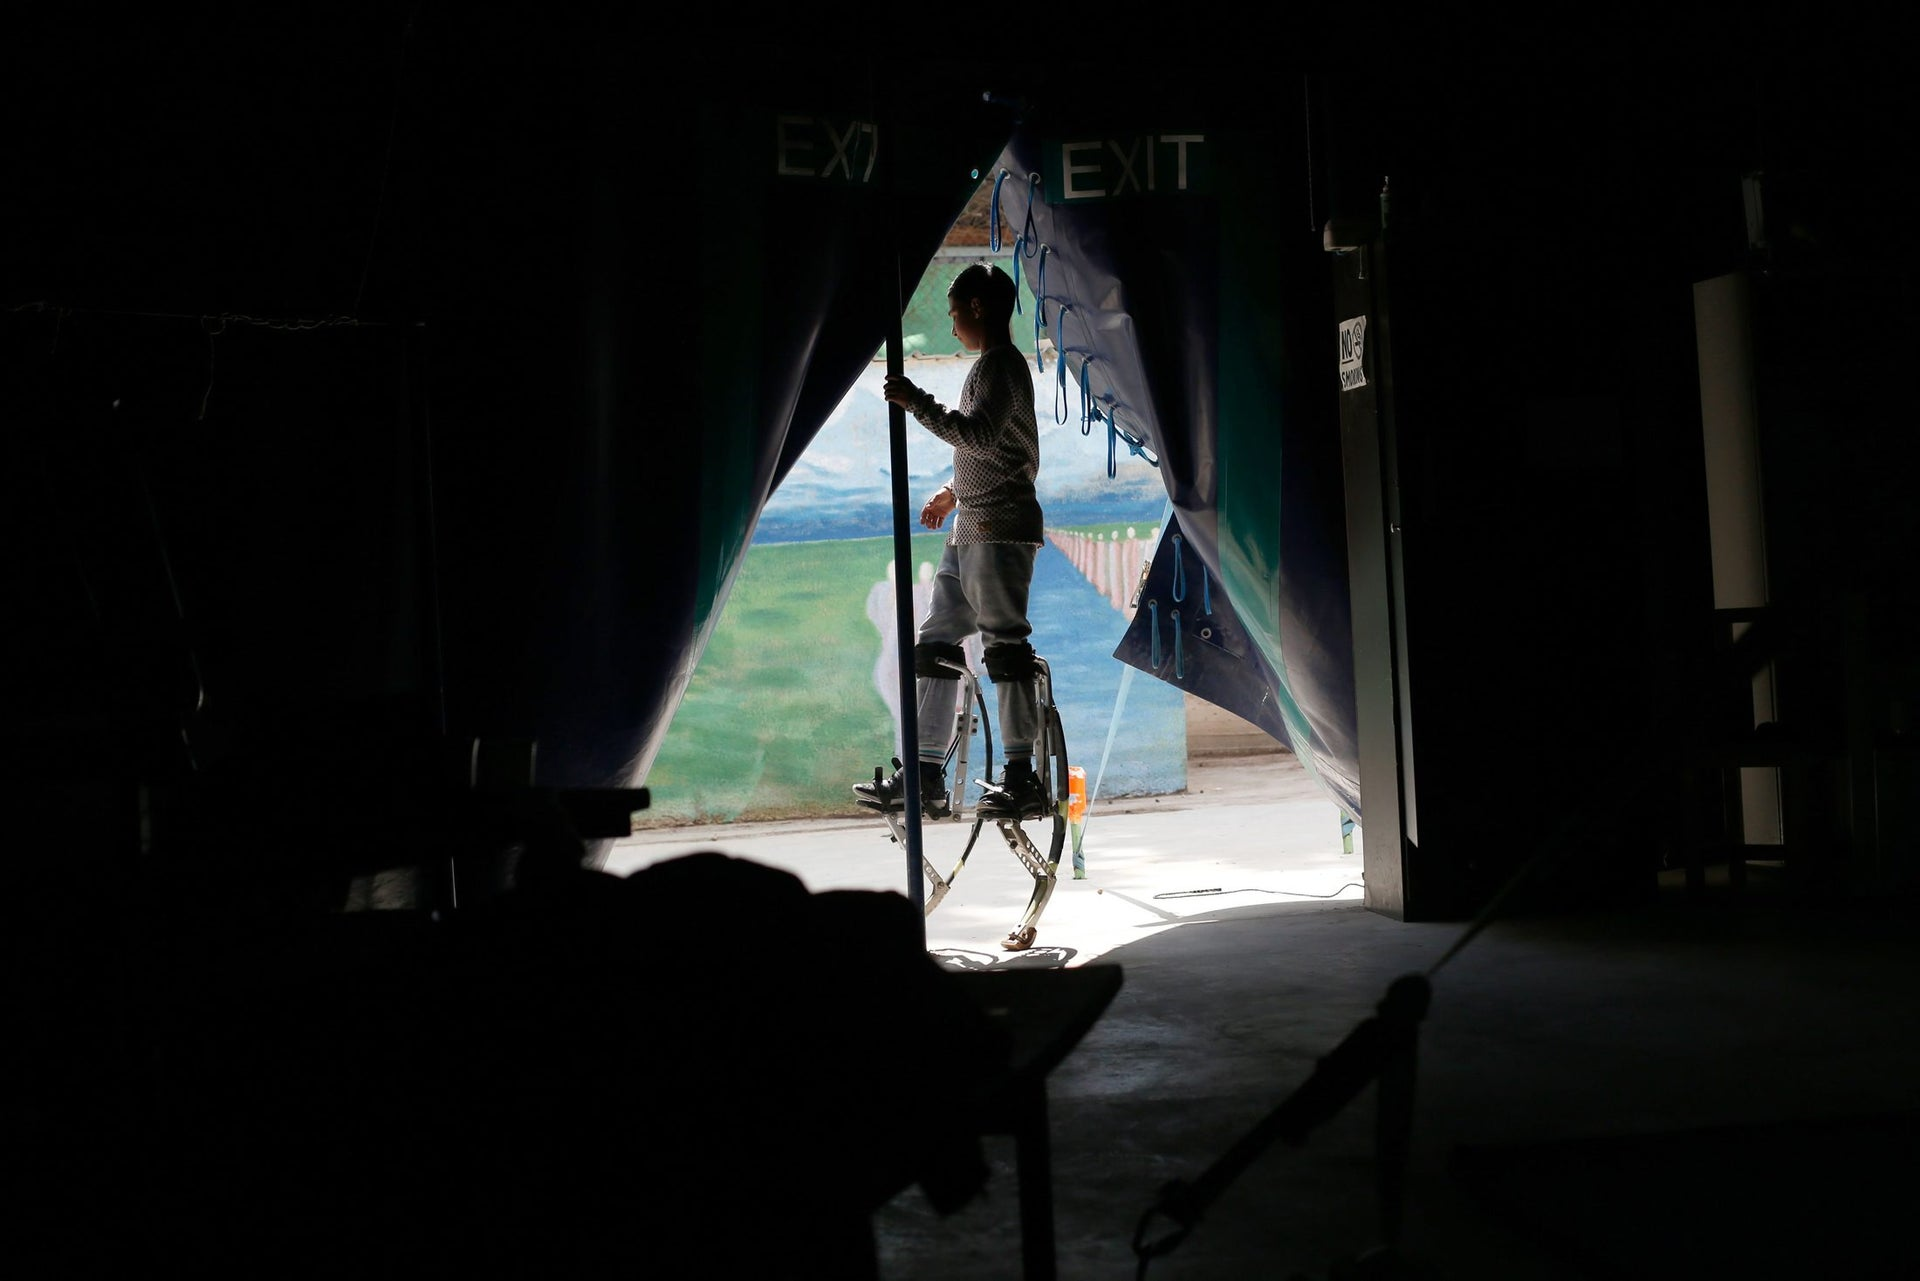 A Palestinian boy trains on long legs at the Palestinian Circus School in the village of Bir Zeit, near Ramallah on March 21, 2016.